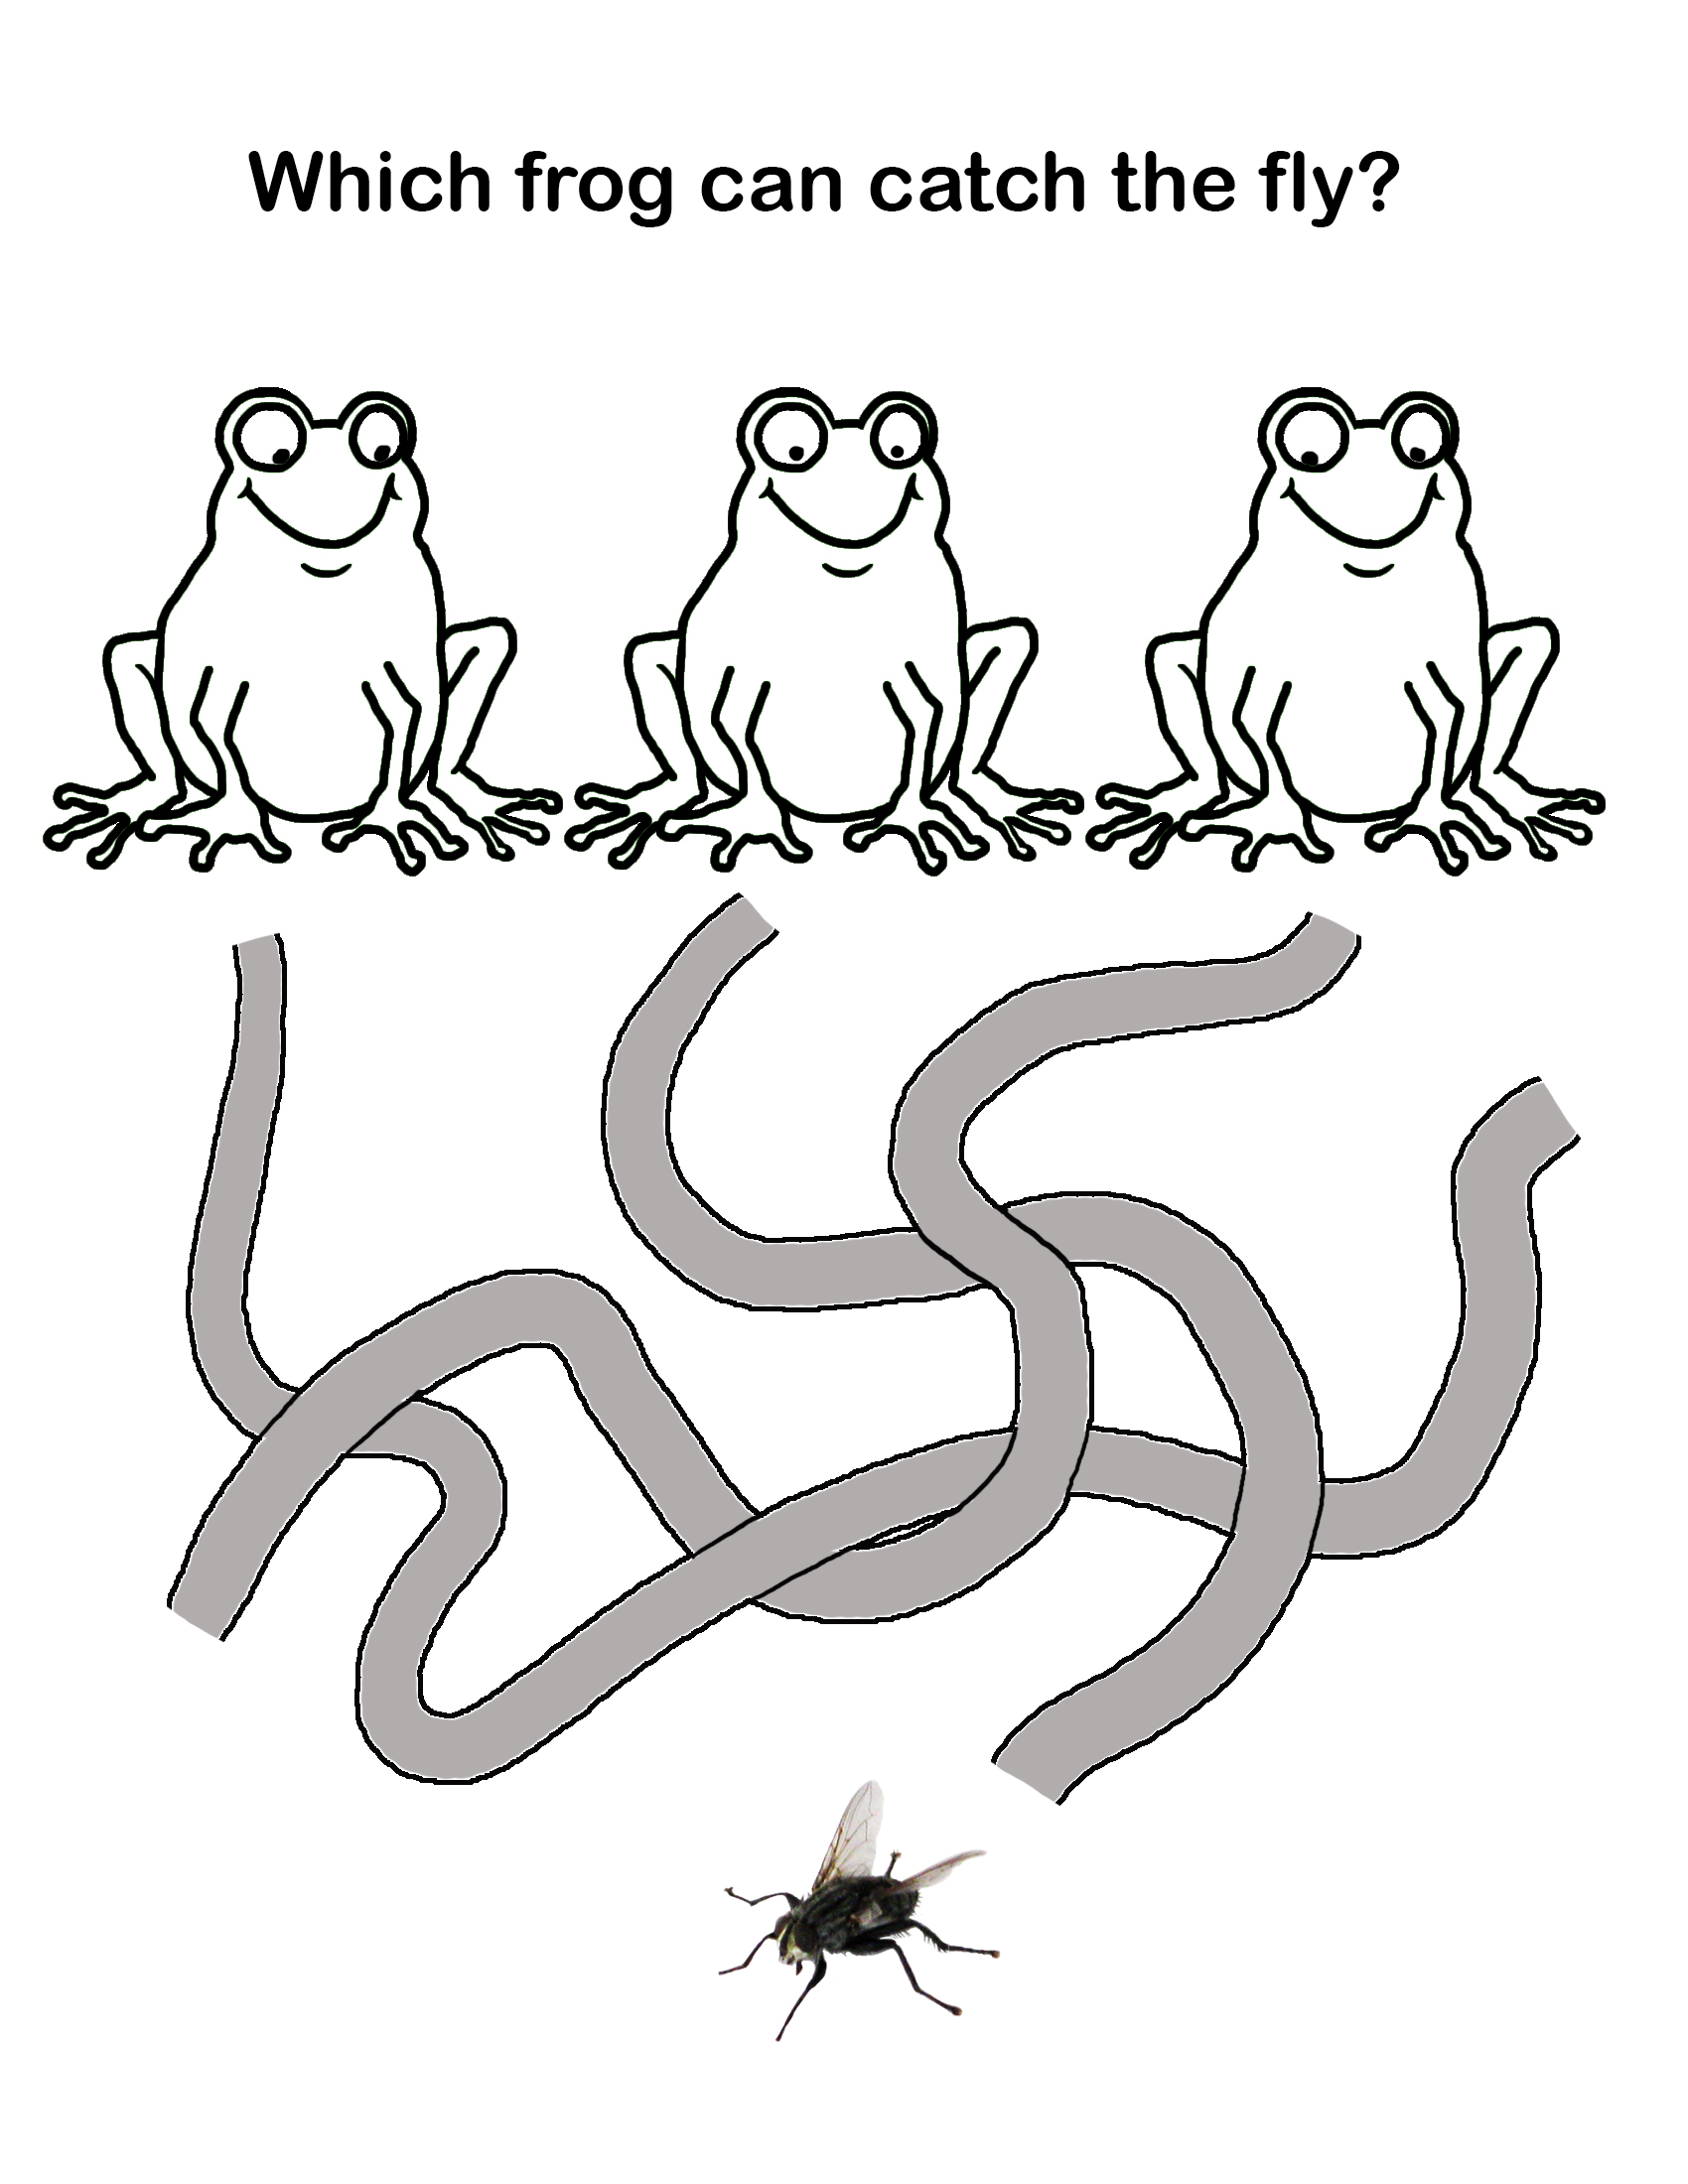 frog catch fly maze for kids